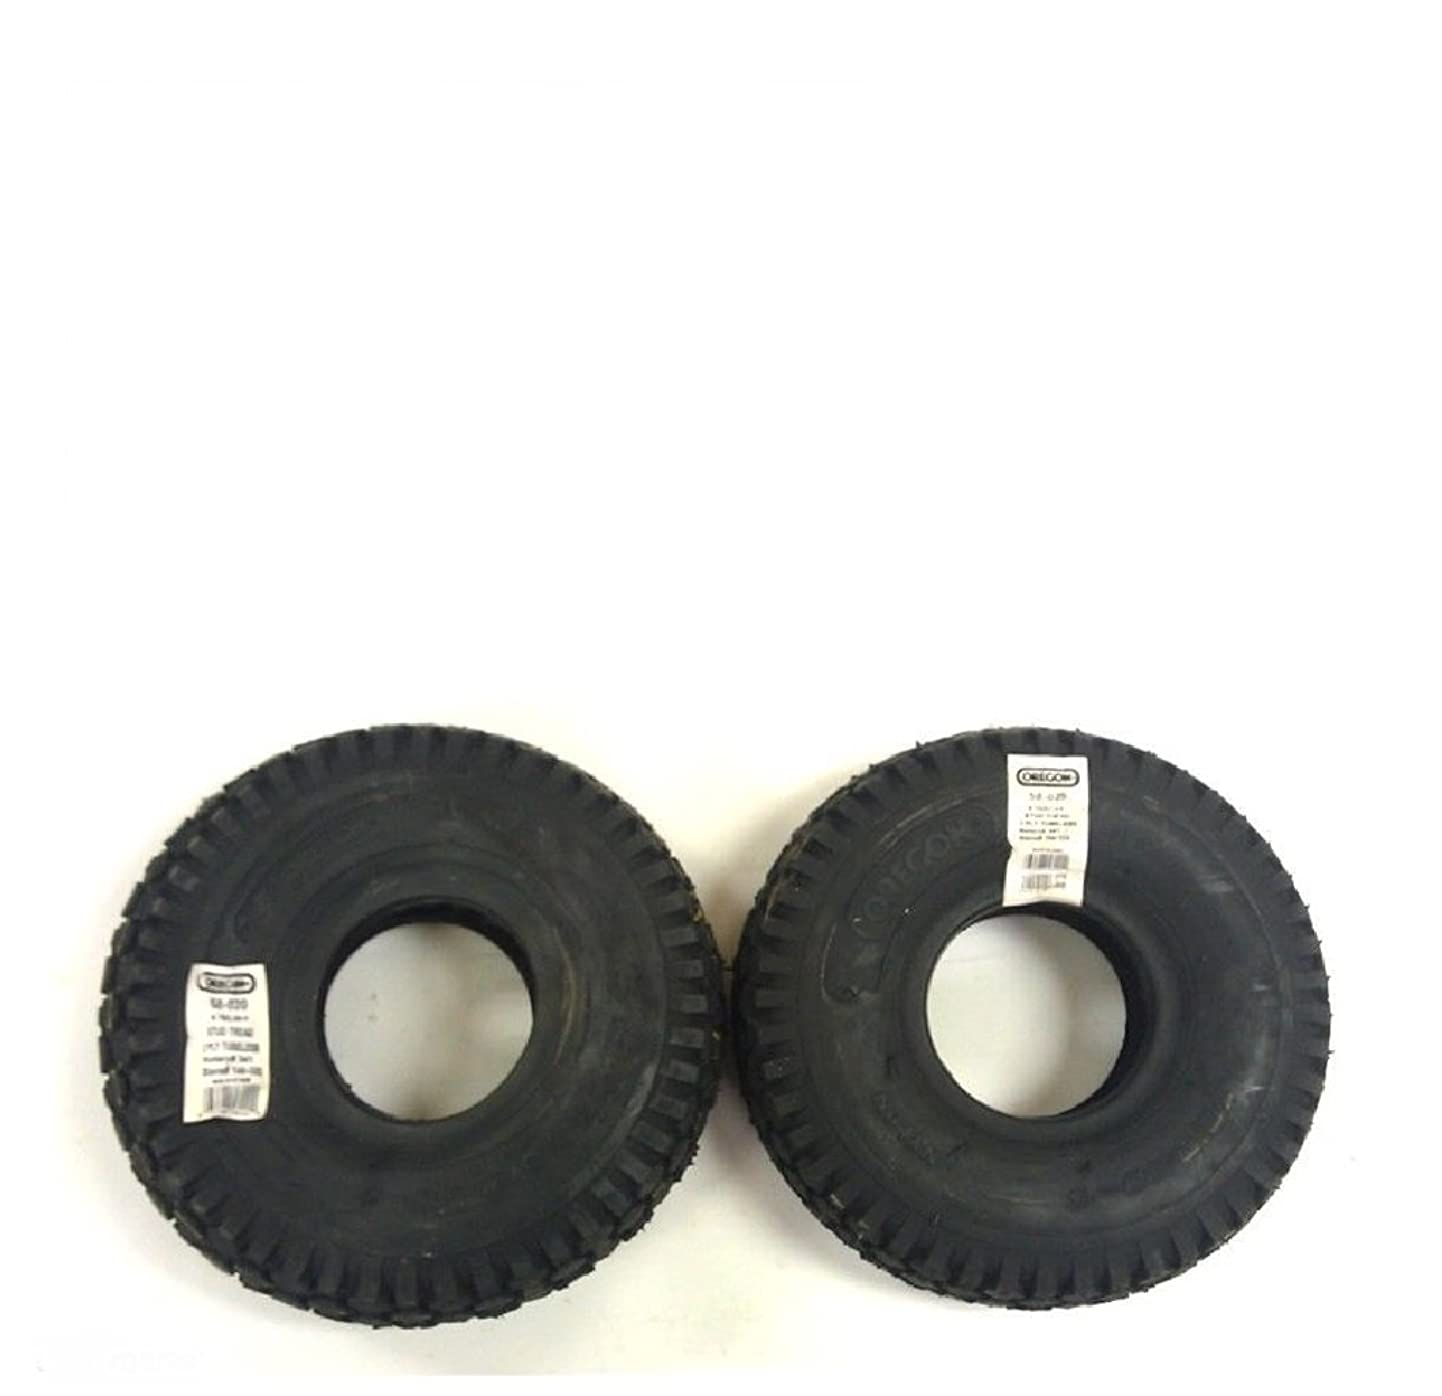 Oregon 58-020 Pack of 2 Go Kart Stud Tires, 2 Ply - 4.10 x 3.50 x 4 ftaegzzunod4